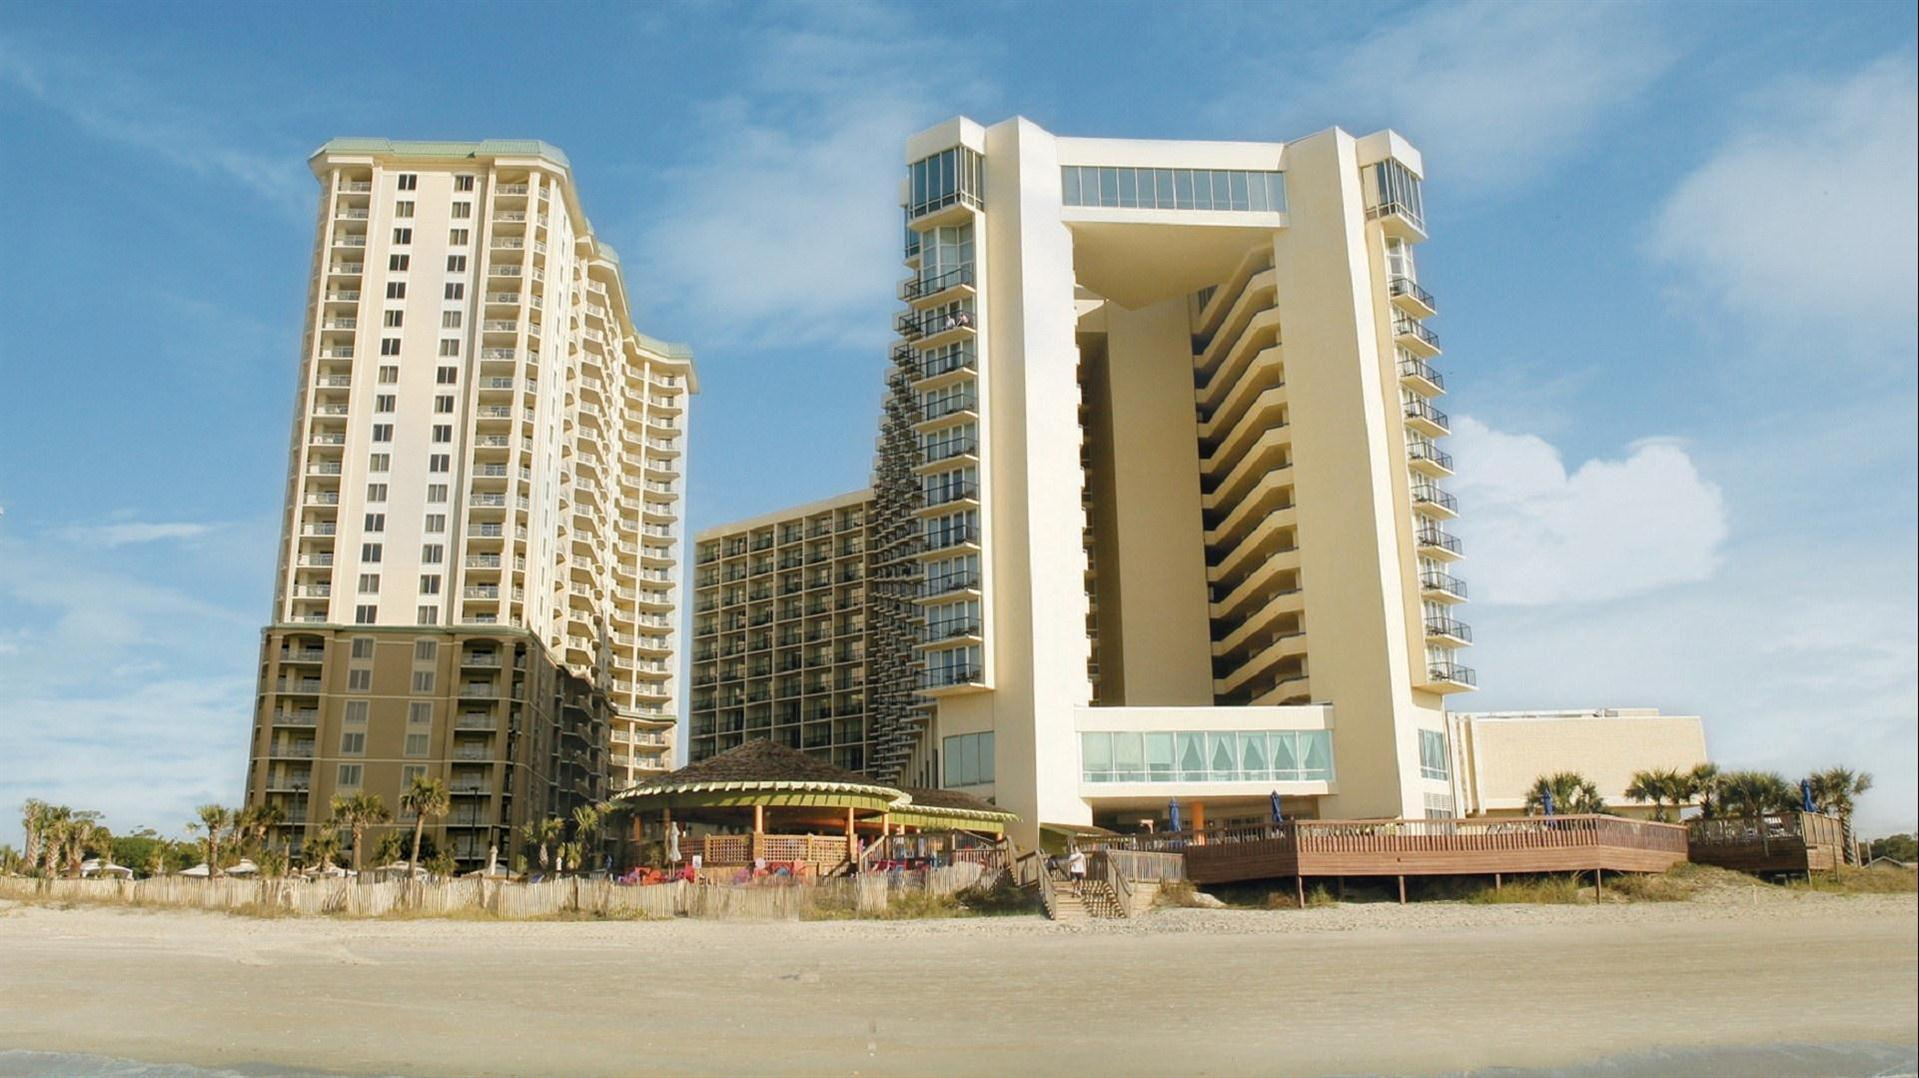 Meetings And Events At Hilton Myrtle Beach Resort Myrtle Beach Sc Us